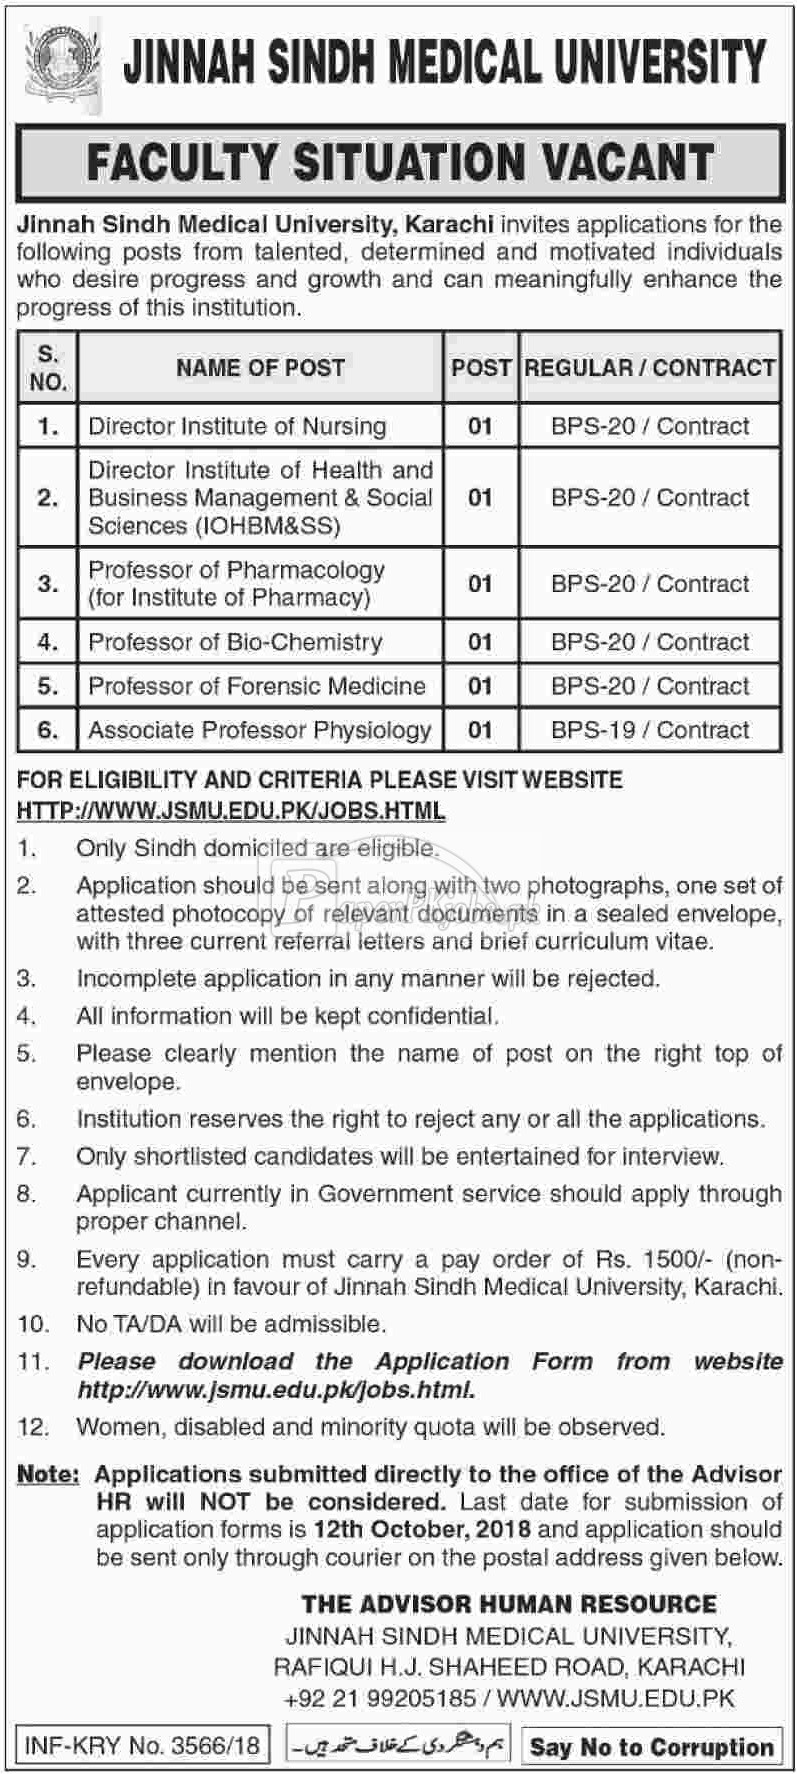 Jinnah Sindh Medical University Karachi Jobs 2018